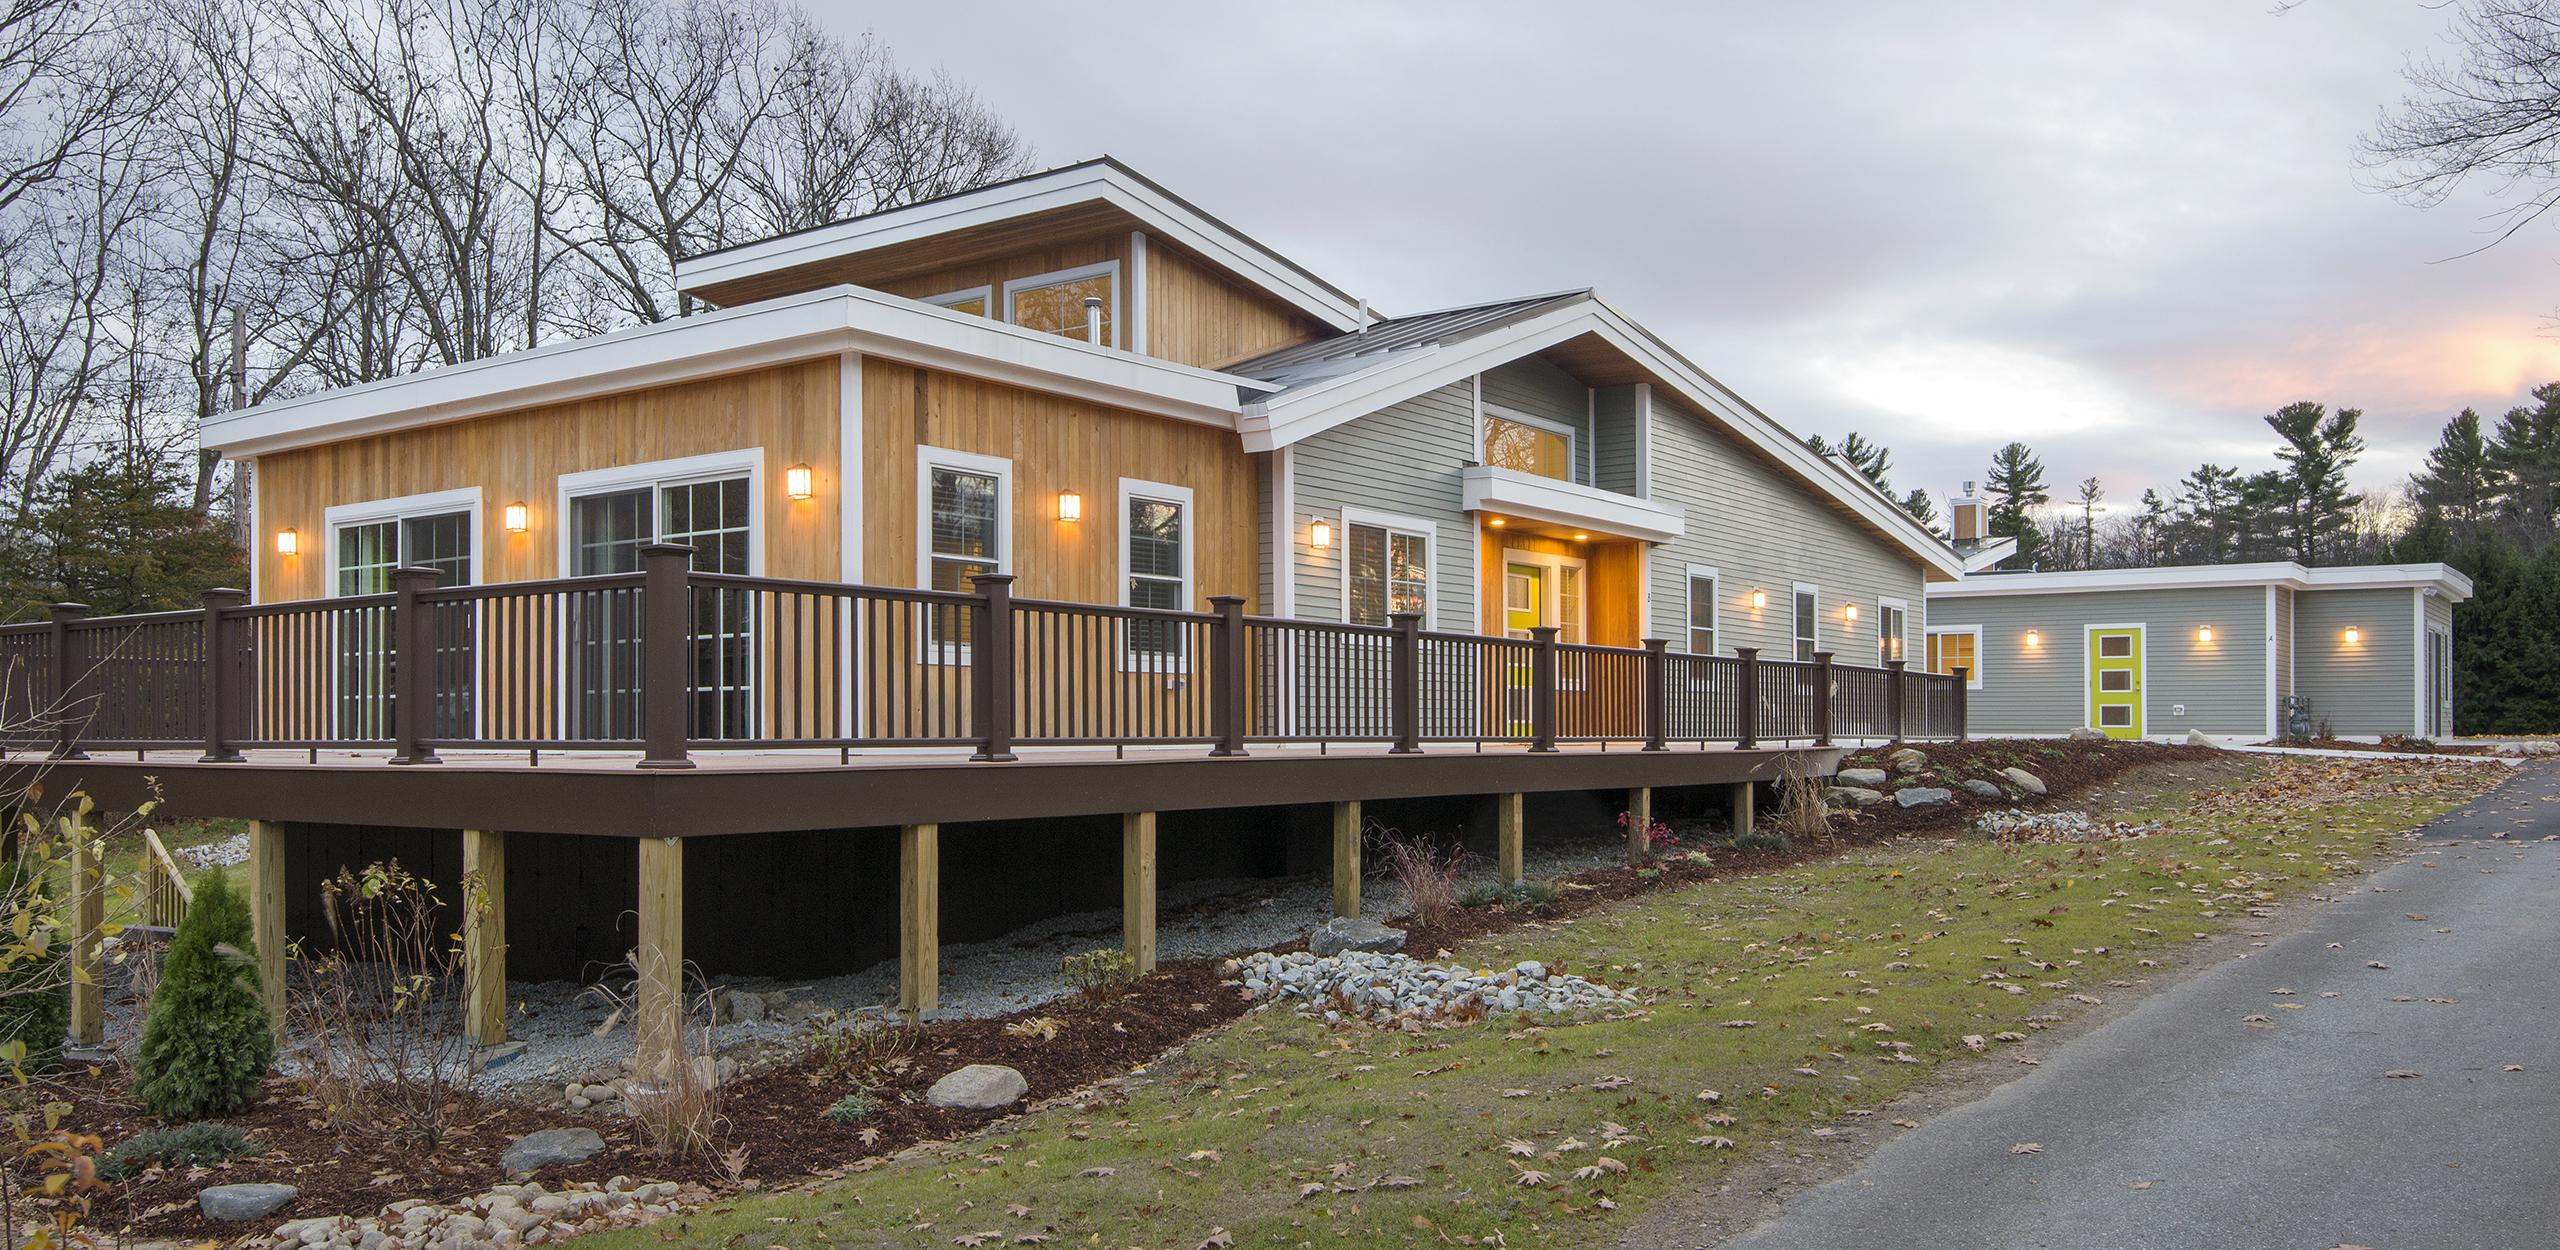 New construction of a sustainable 2-building, 9-unit group home in Carlisle, MA.